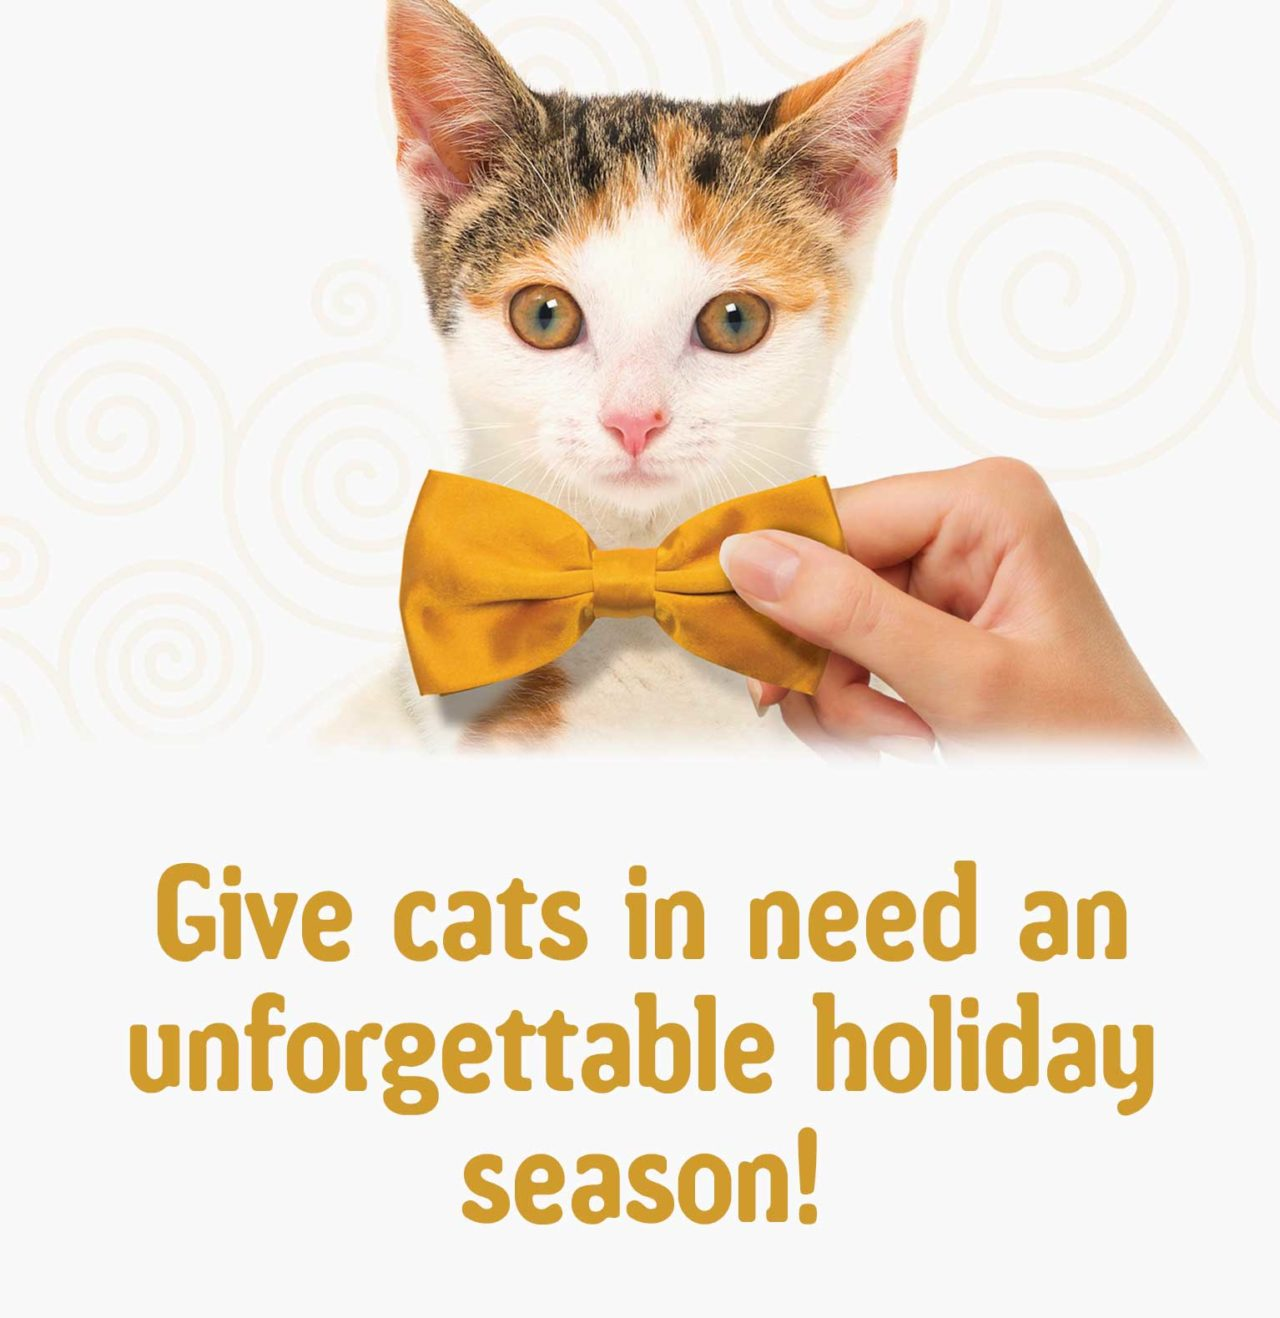 Give cats in need an unforgettable holiday season